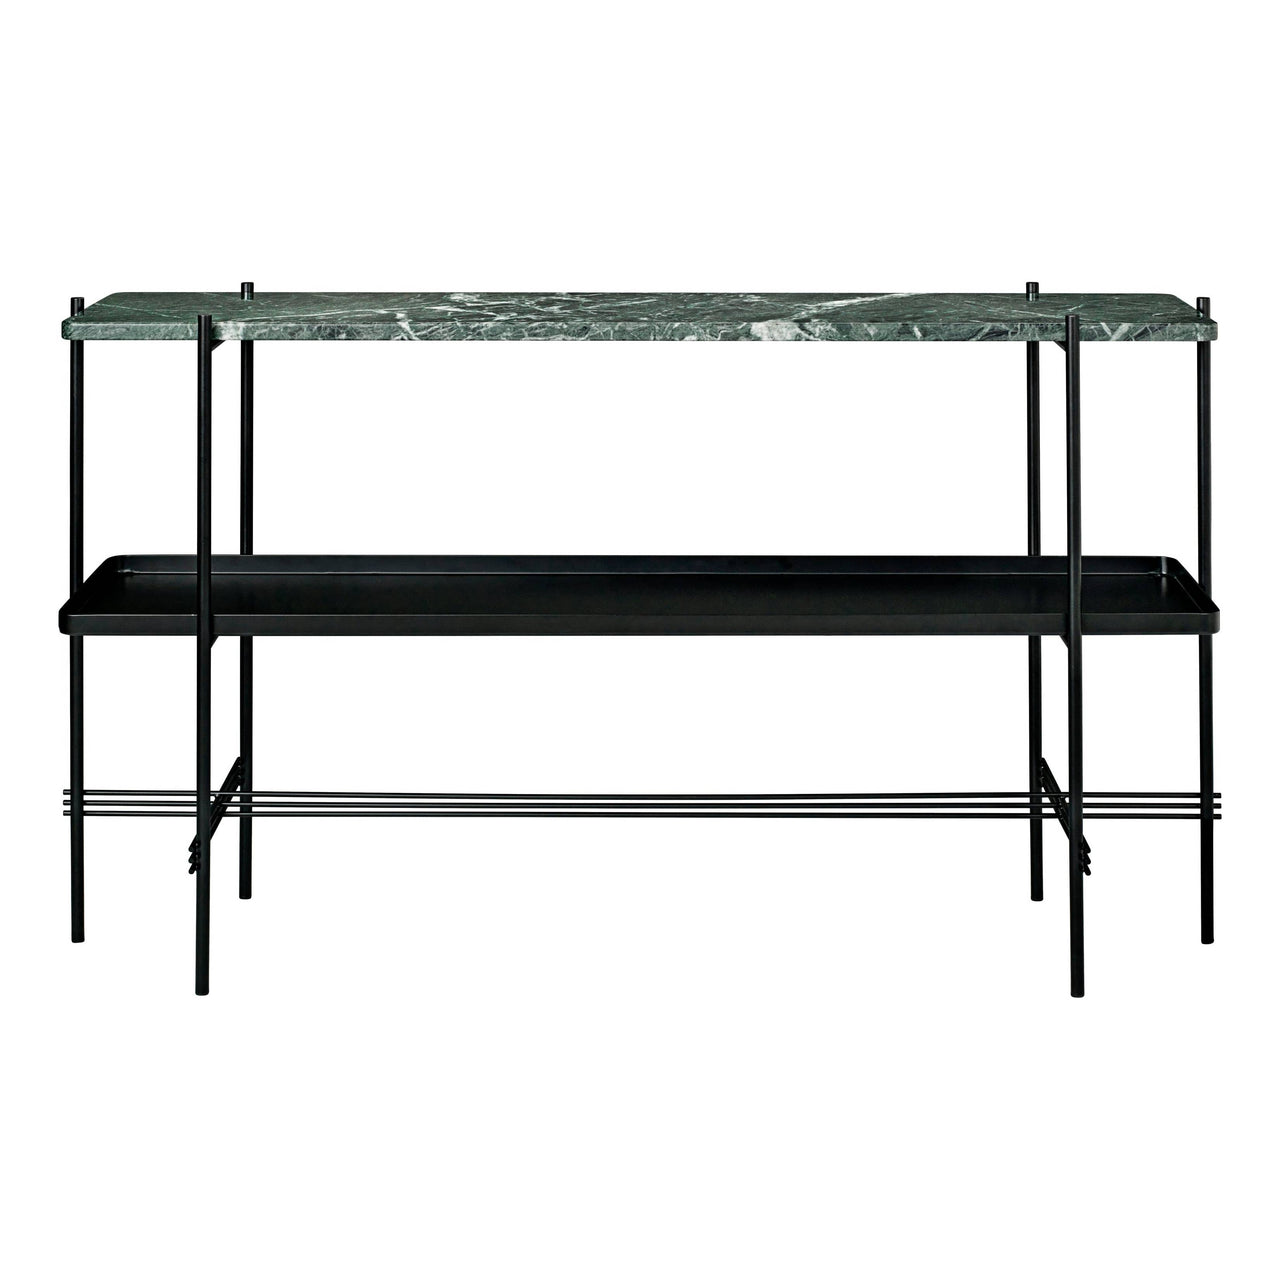 TS Console: 2 Racks + Tray + Black Base + Green Guatemala Marble